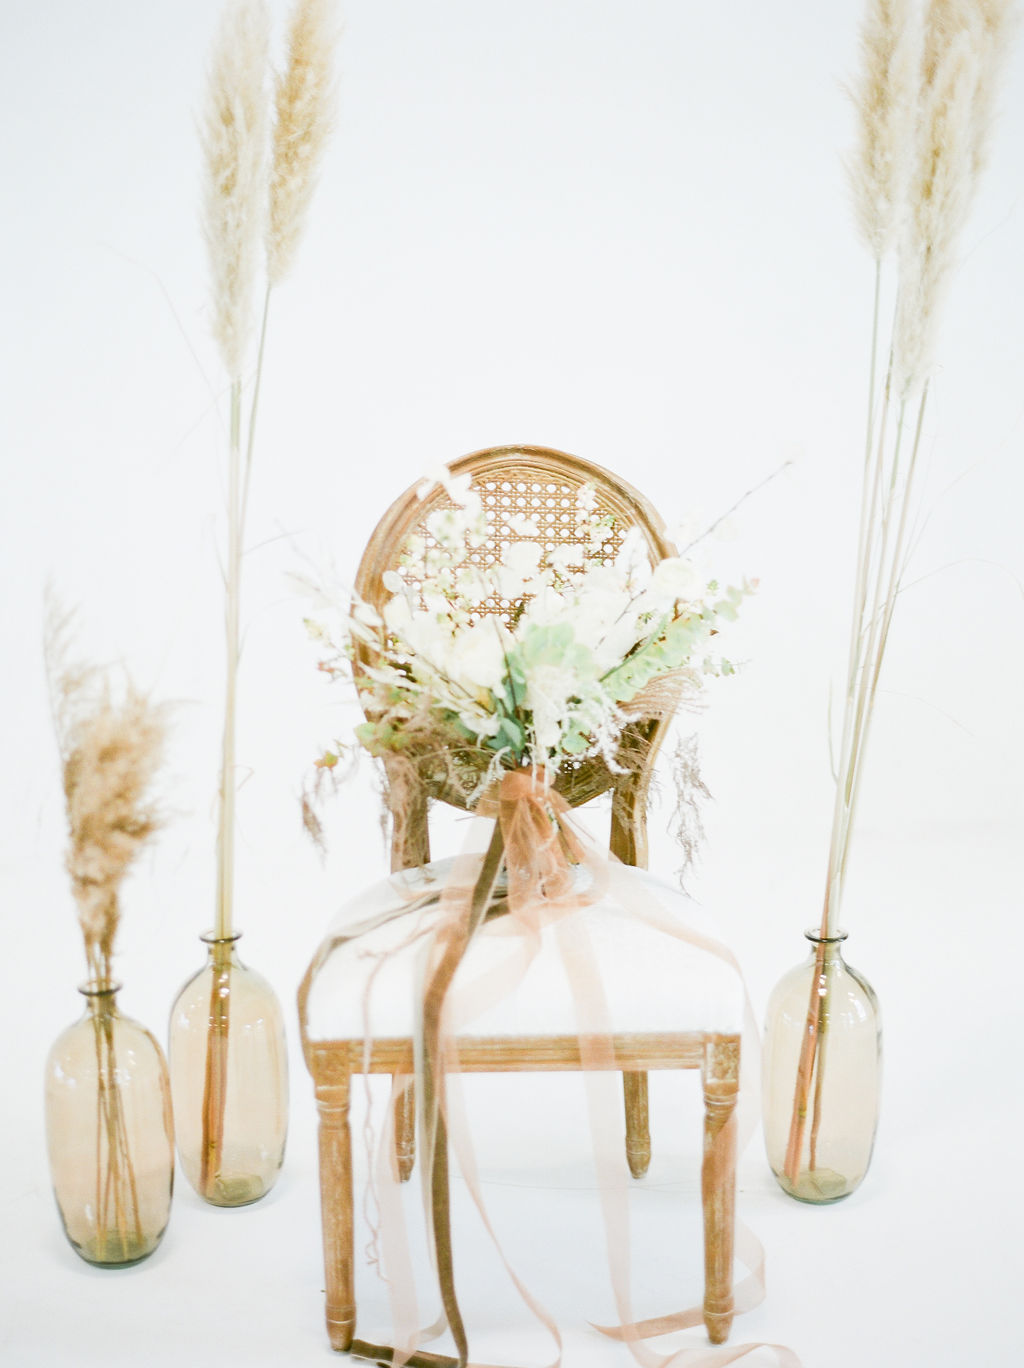 Bouquet of pampas grass and roses sit on white chair by Deborah Lee Designs Vancouver